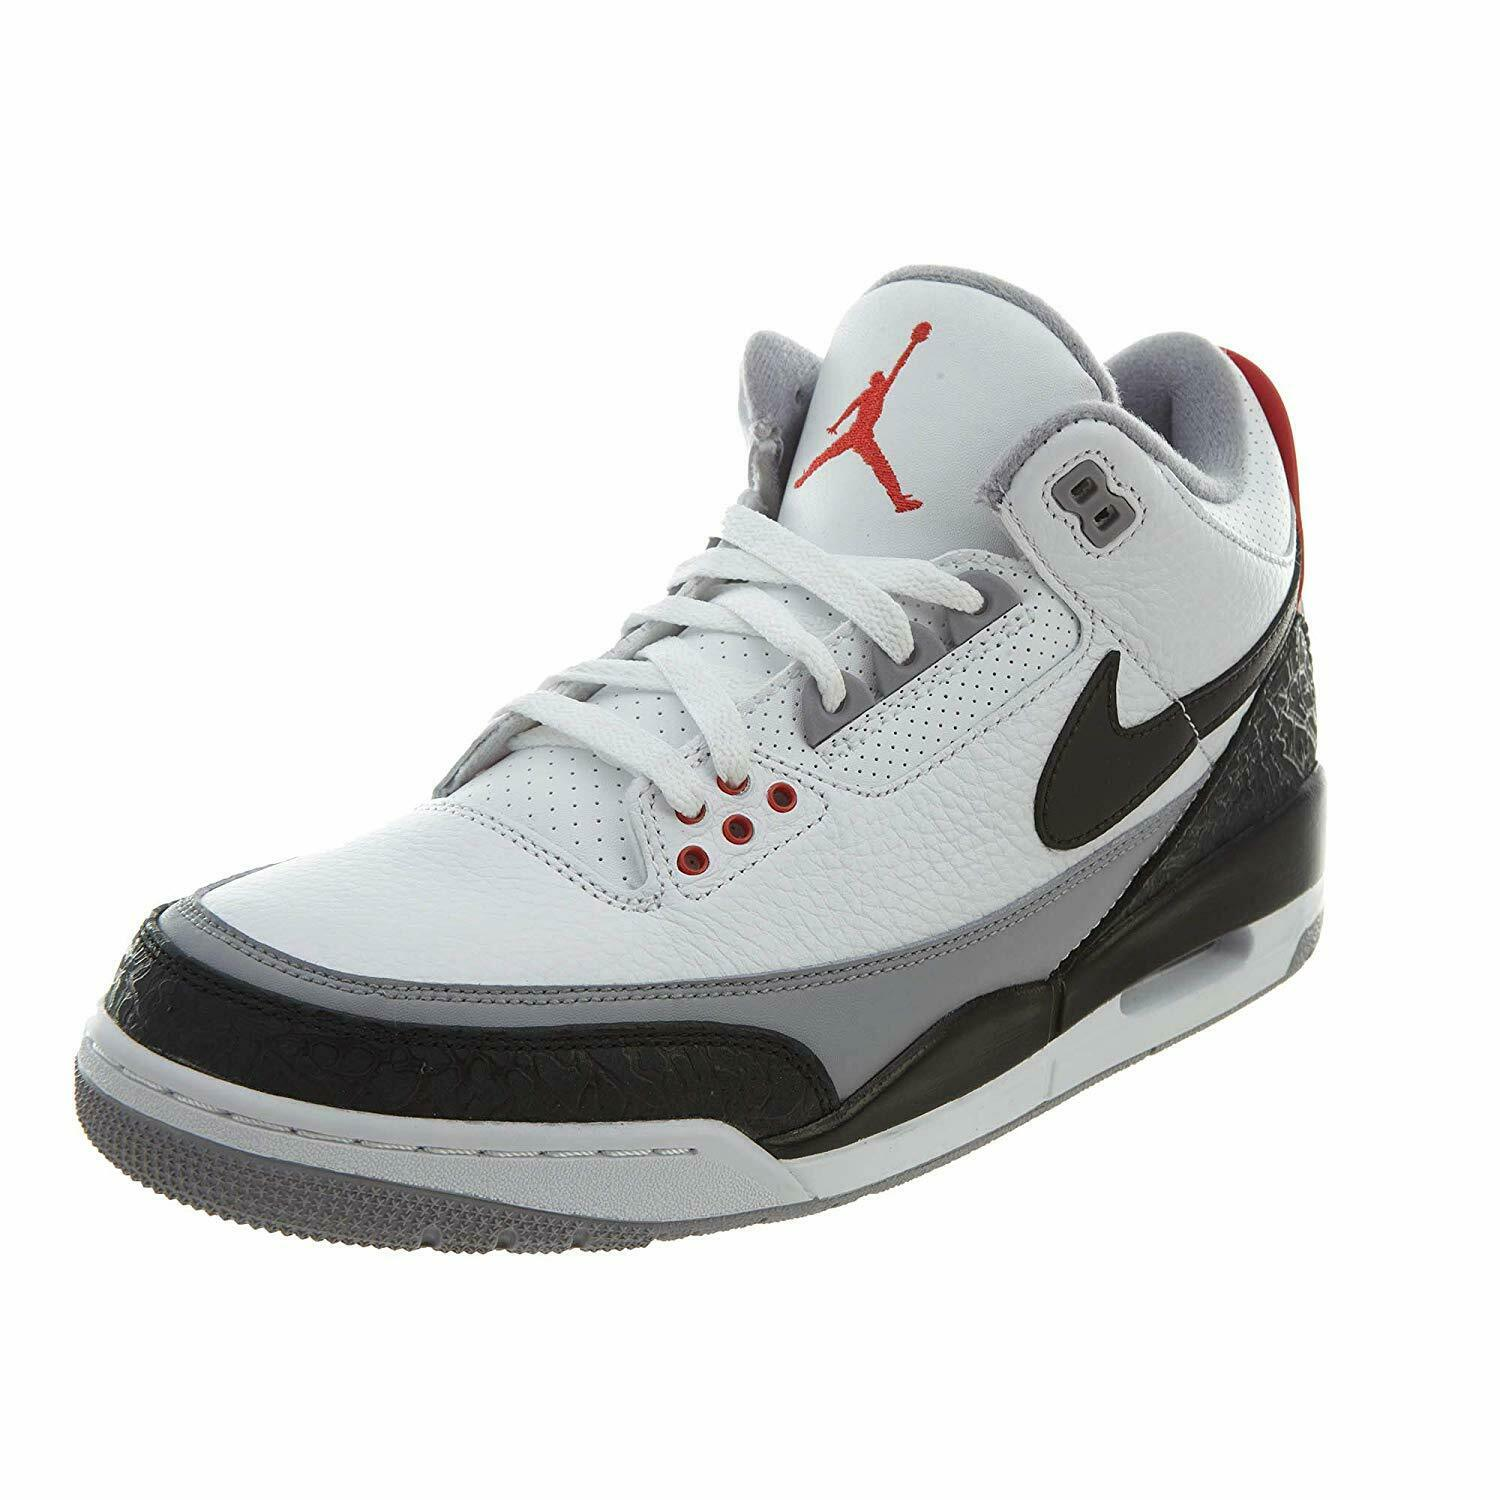 AIR JORDAN MENS 3 RETRO NRG TINKER SNEAKERS AQ3835-160 WHT RED GRY BLK 11